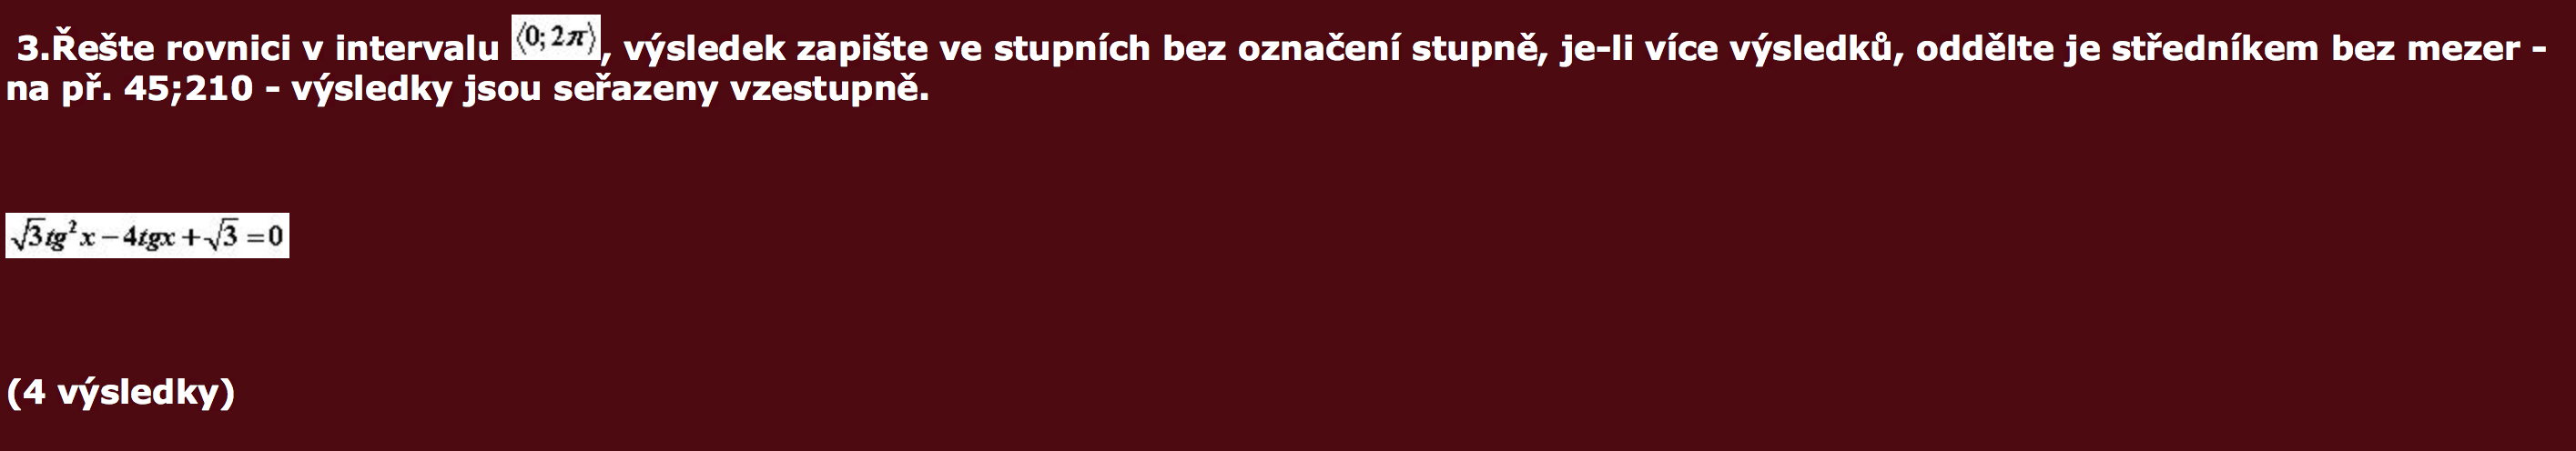 http://forum.matematika.cz/upload3/img/2018-04/75331_Screen%2BShot%2B2018-04-17%2Bat%2B16.27.19.png